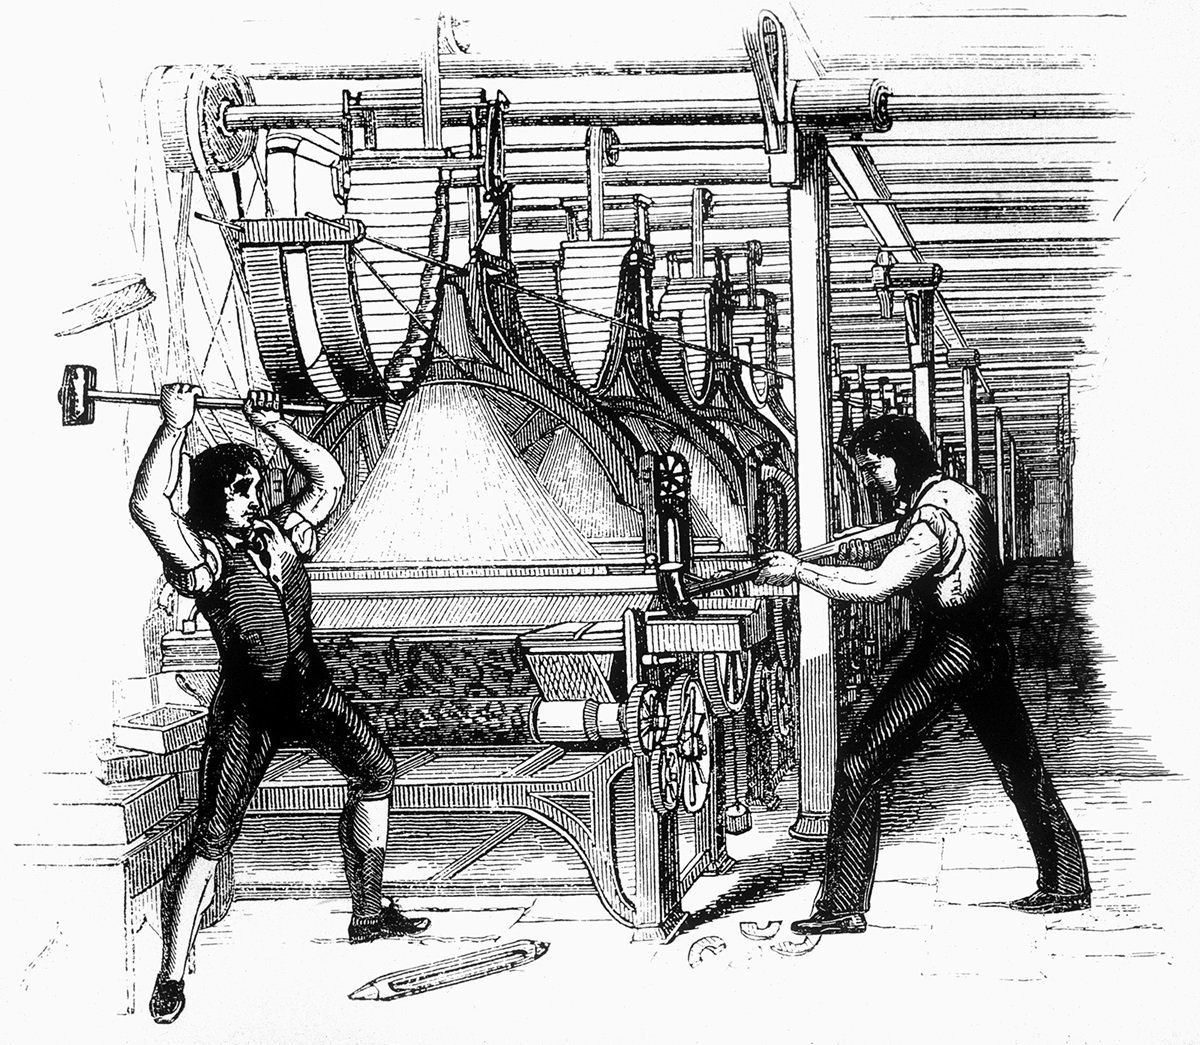 Luddites smashing a power loom in 1812.